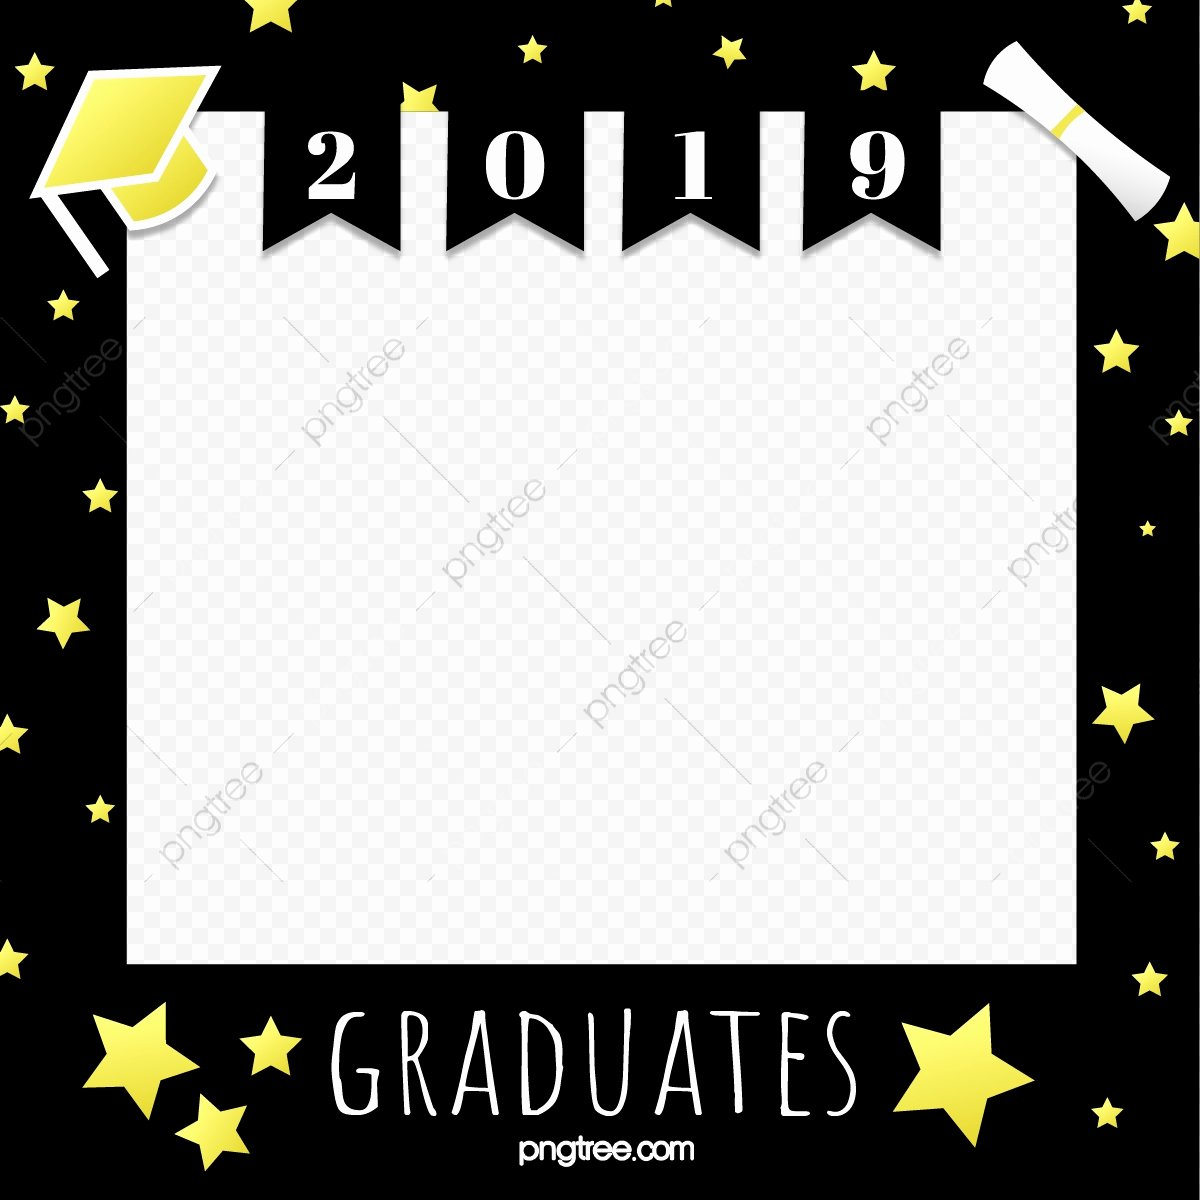 Graduation Borders and Backgrounds Best Of Golden Graduation Border 2019 Graduation Cartoon